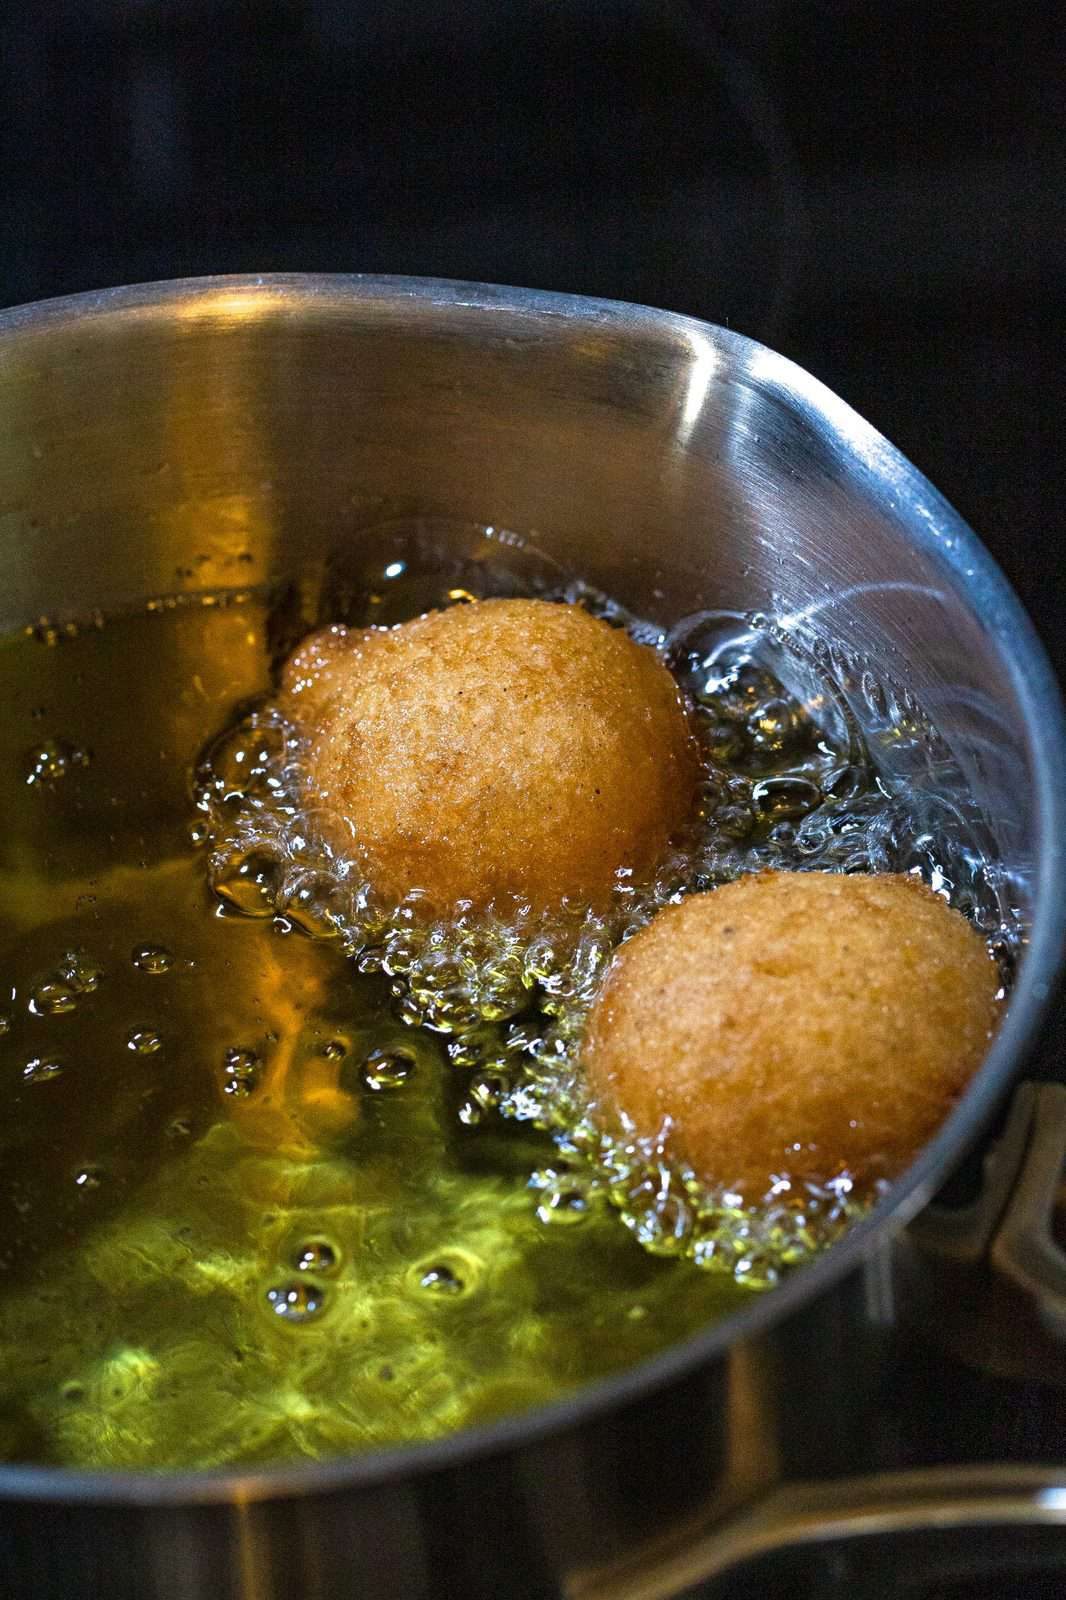 pancake puppies being shown frying in oil in a pot.